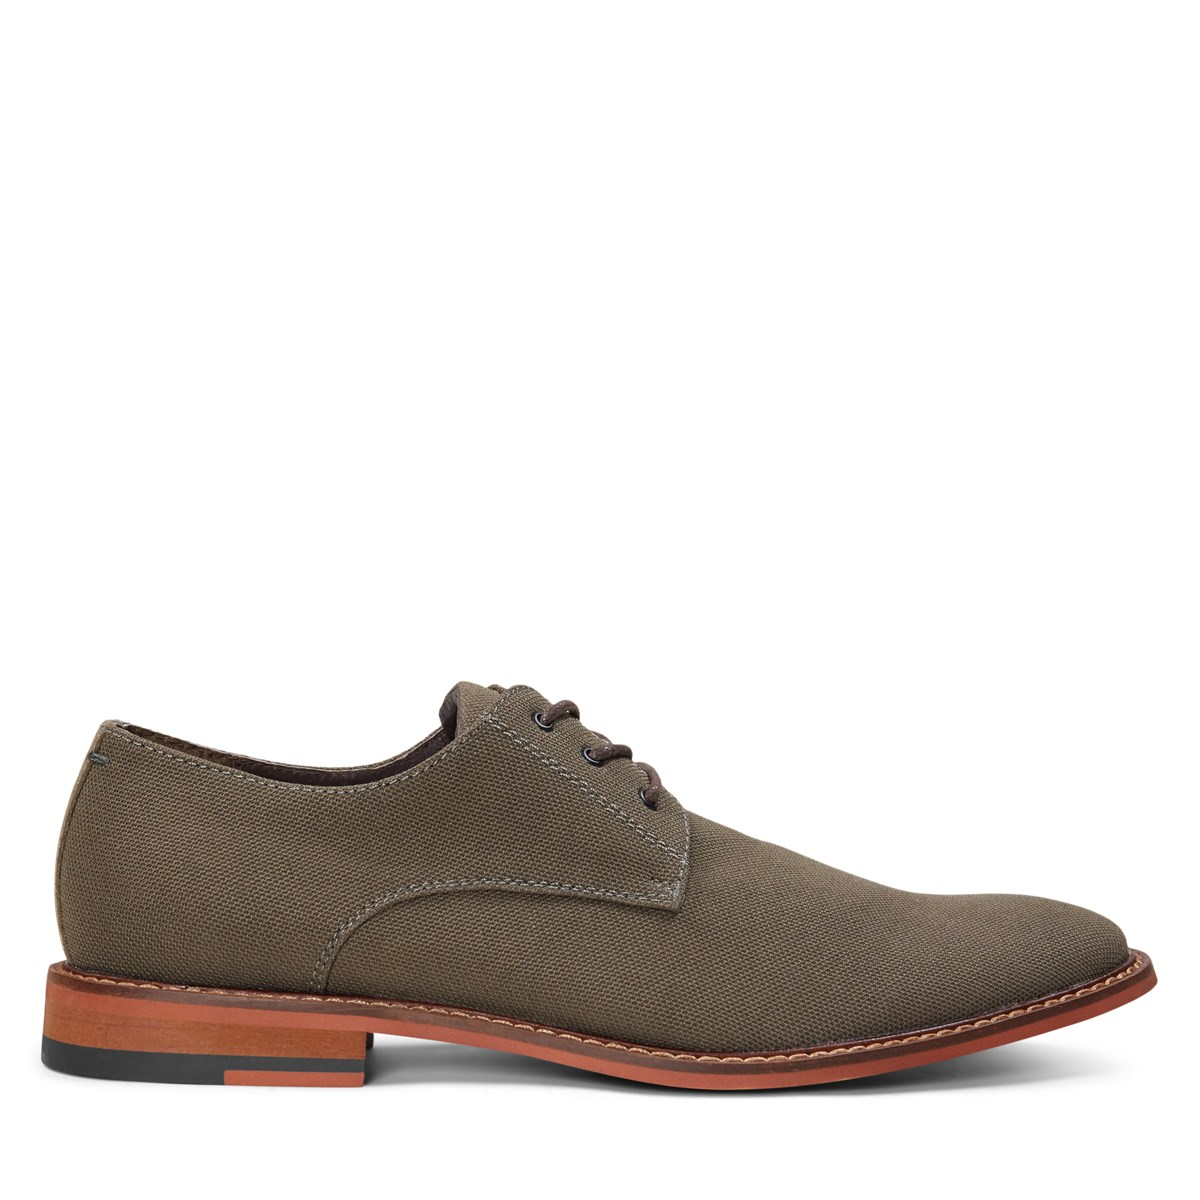 Men's Alberto Lace-Up Shoe in Moss Nylon